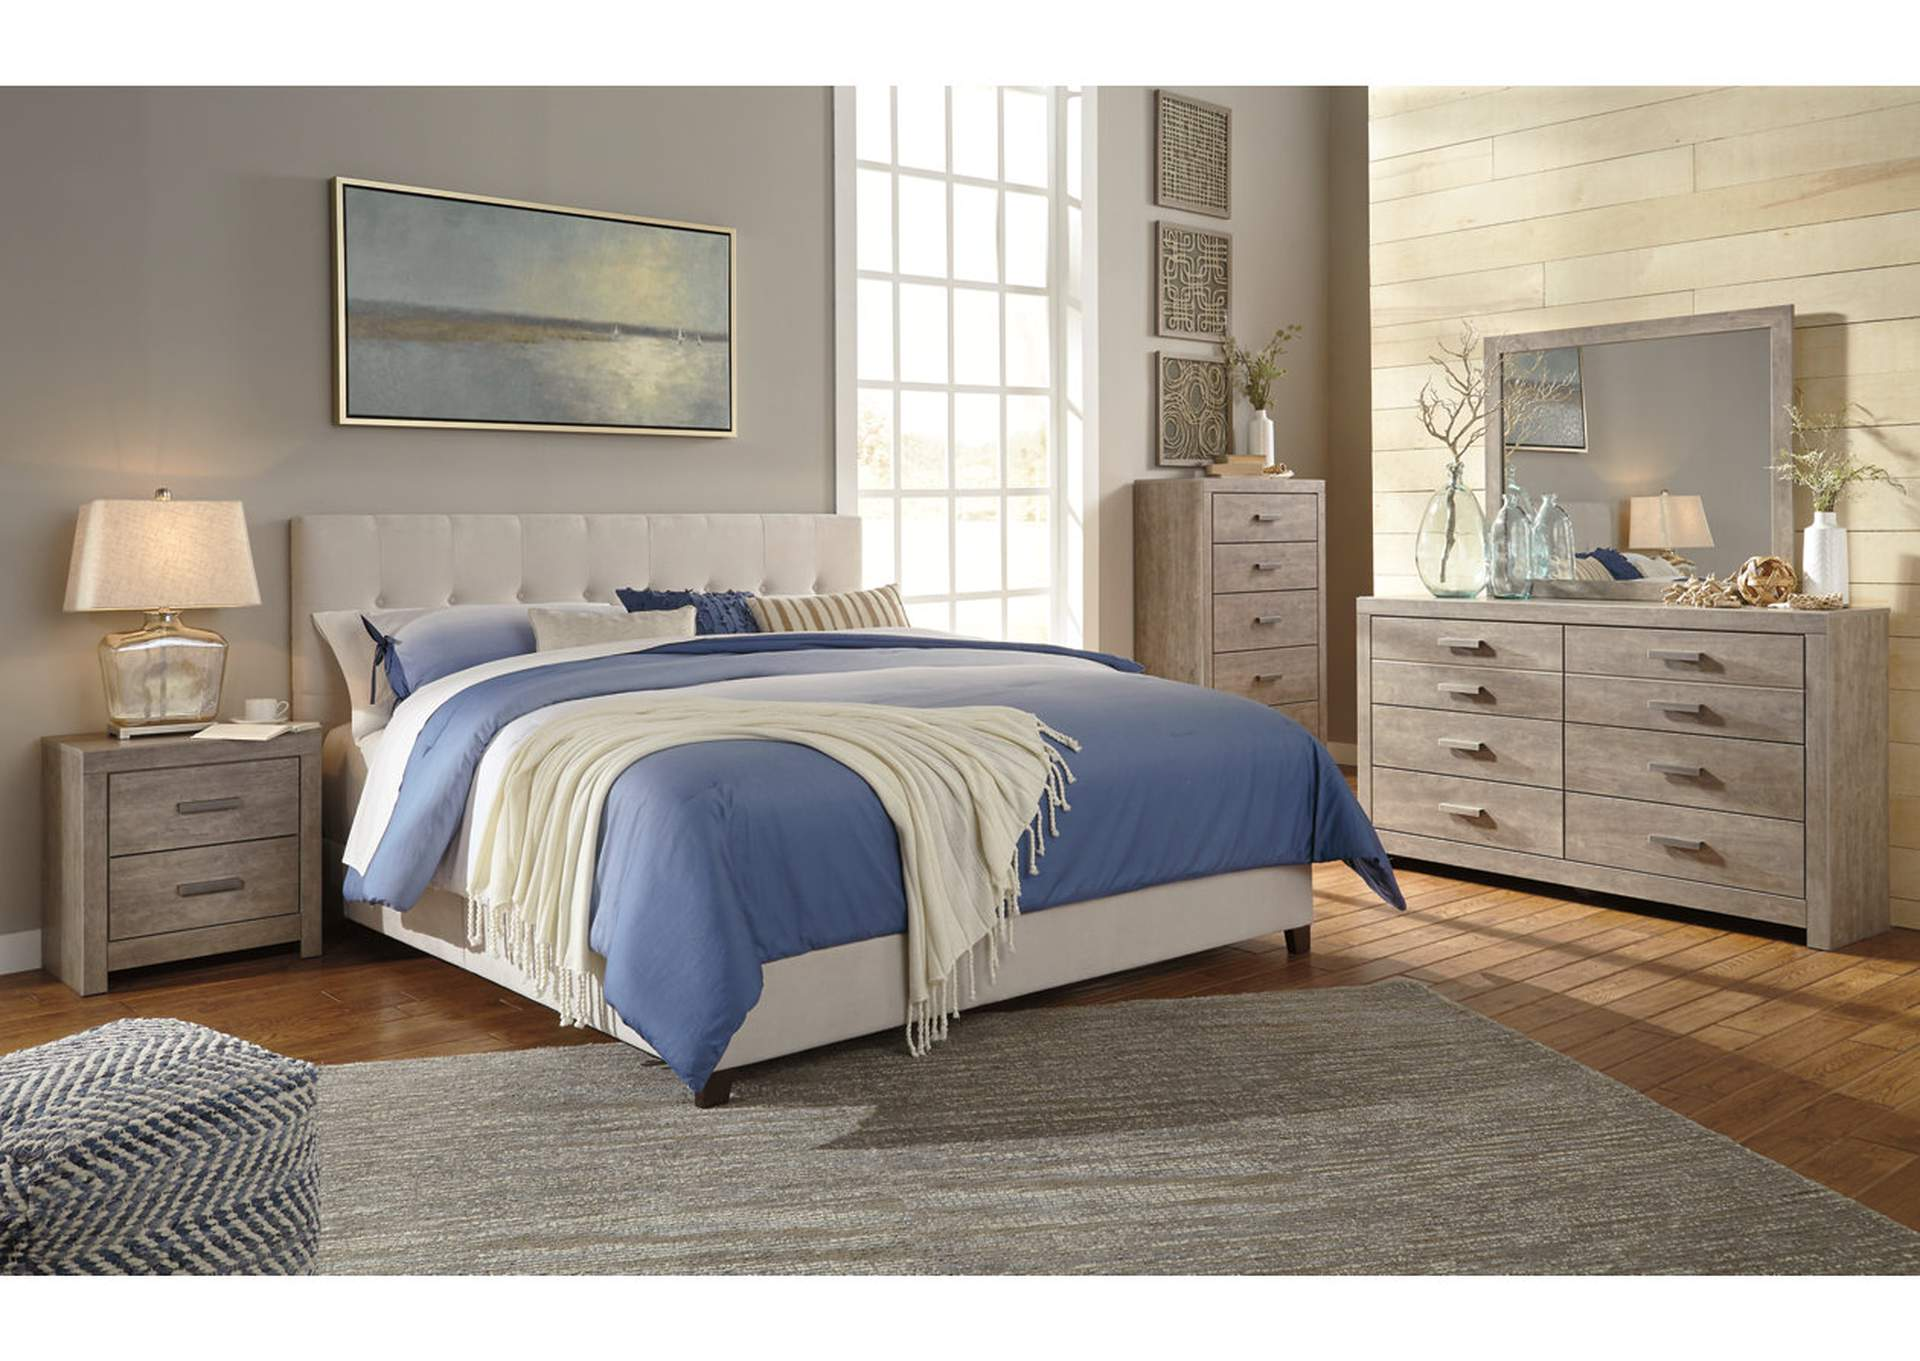 Queen Cream Upholstered Bed,Signature Design By Ashley